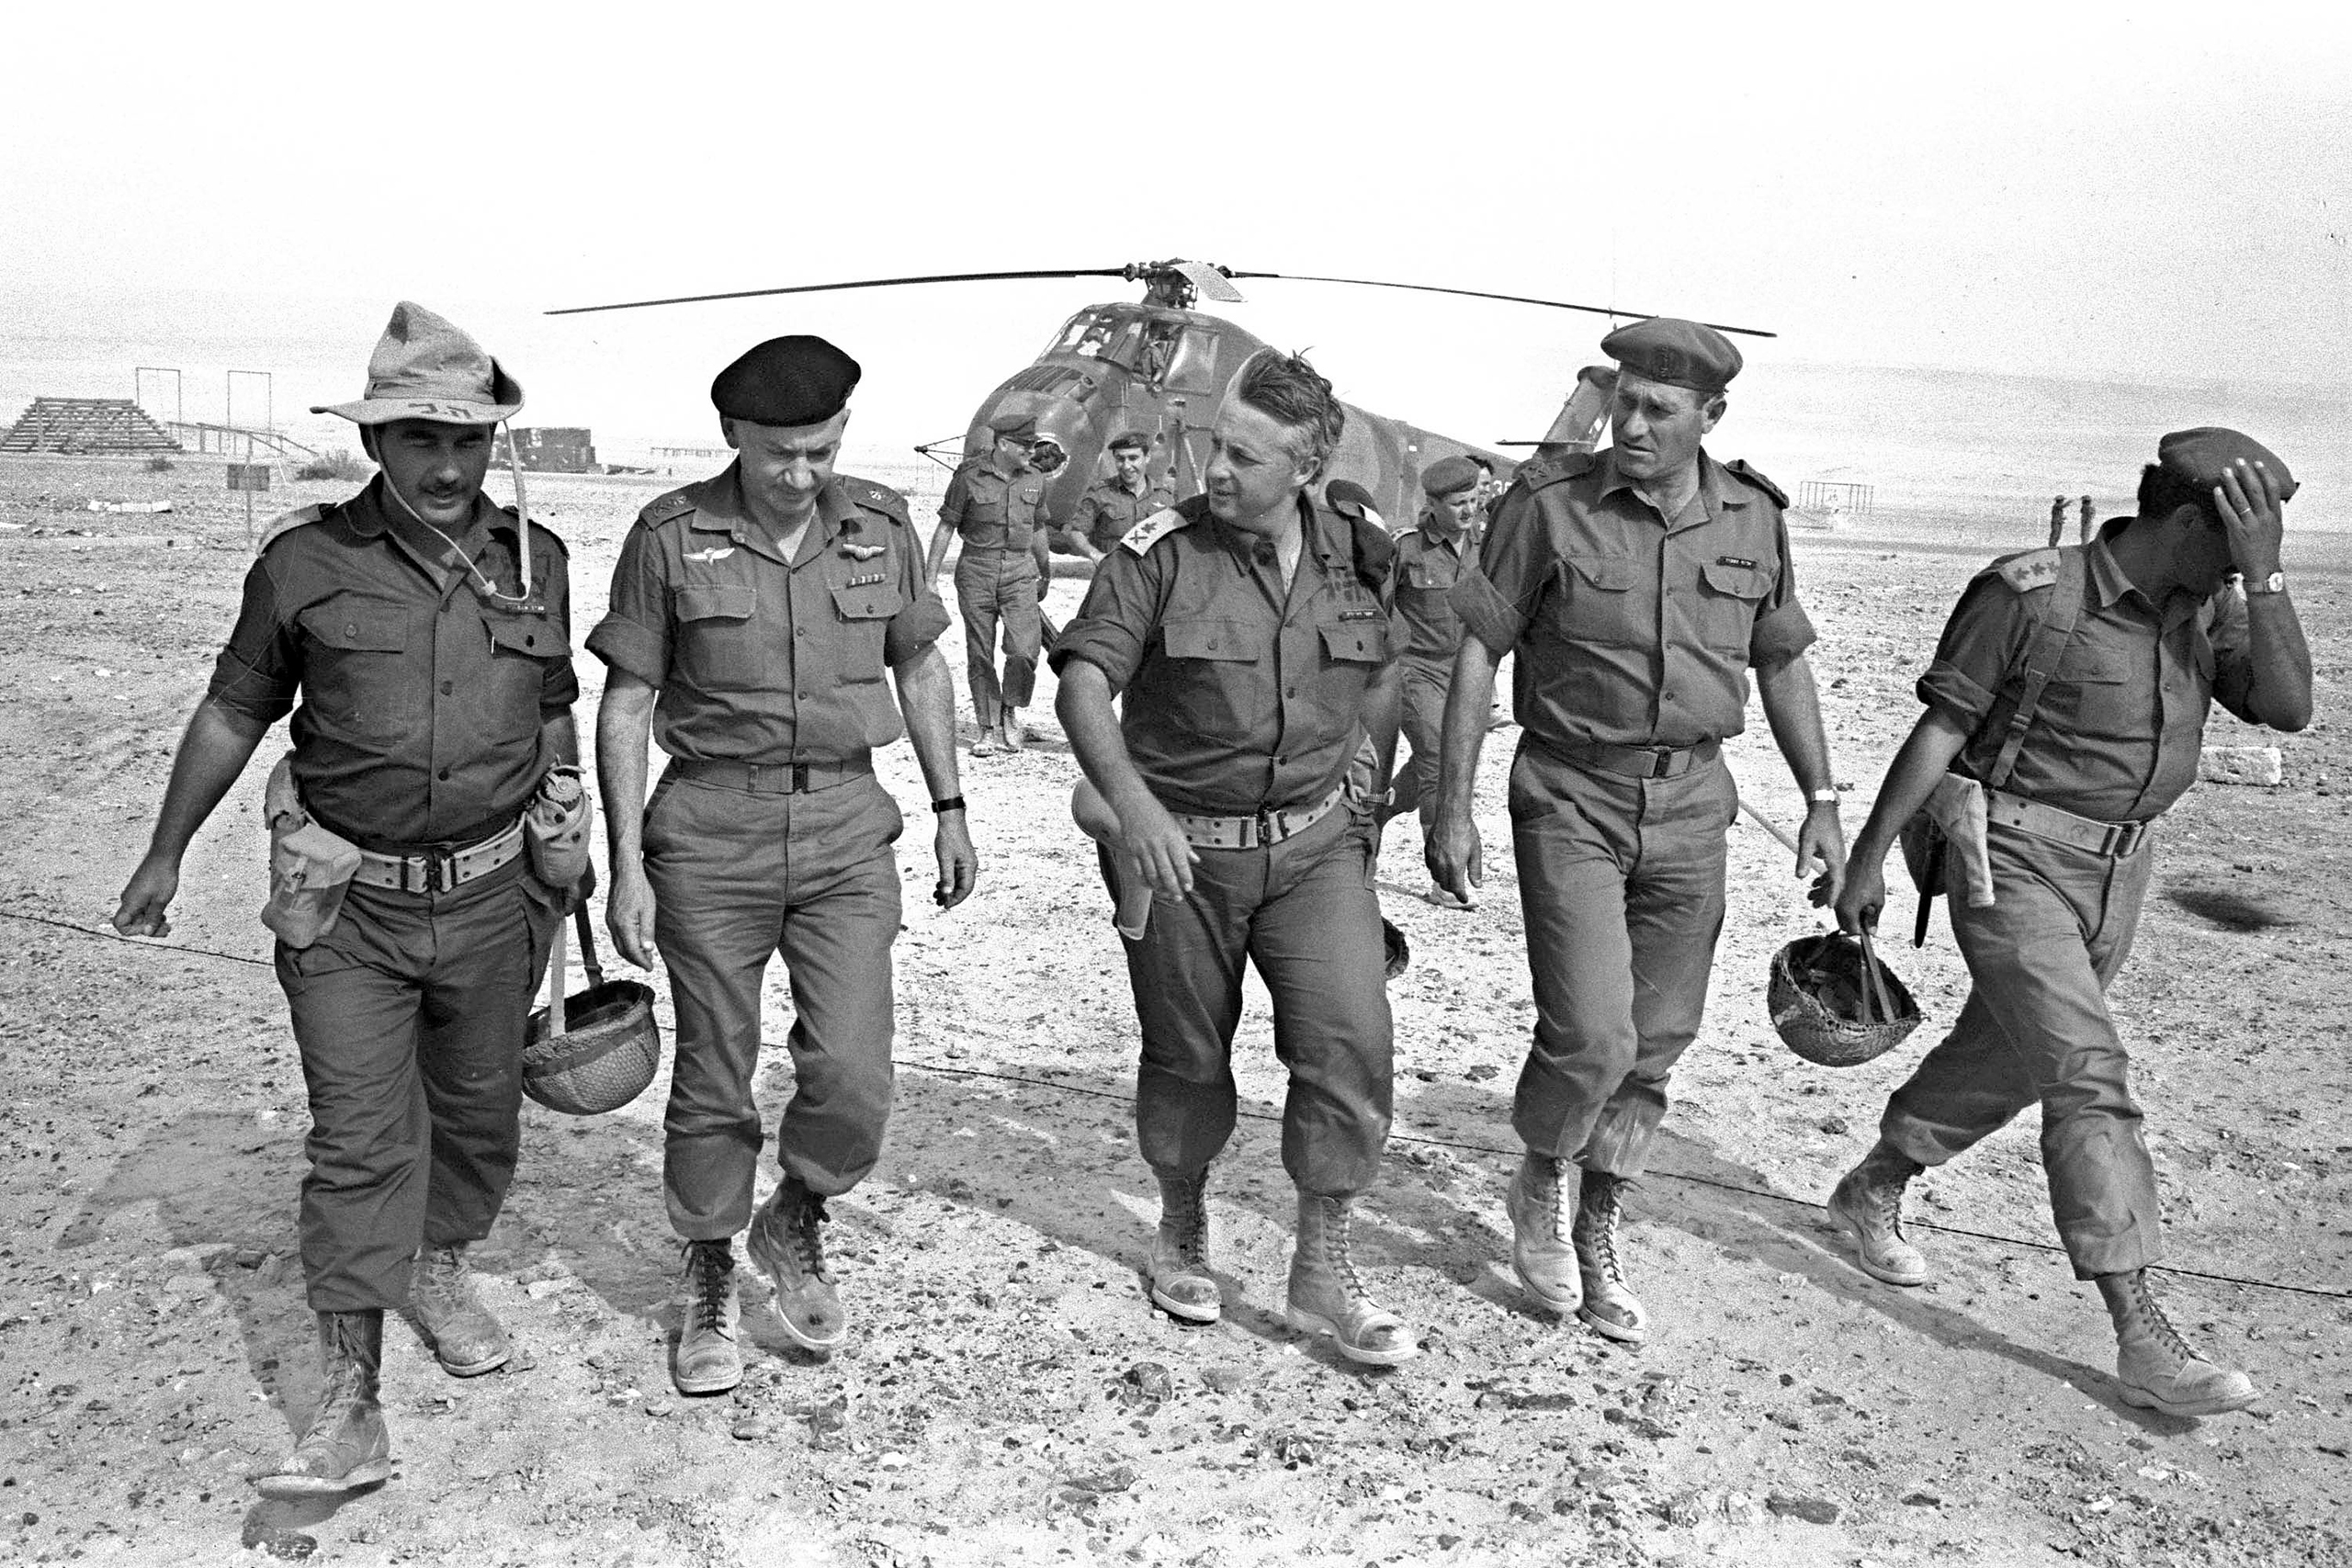 Israeli Army Gen. Ariel Sharon (C), flanked by Gens. Haim Bar-Lev (L) and Yishayahu Gavish (R) and unidentified aides, arrives by helicopter at an army base in Israel's Negev Desert, June 1, 1967.